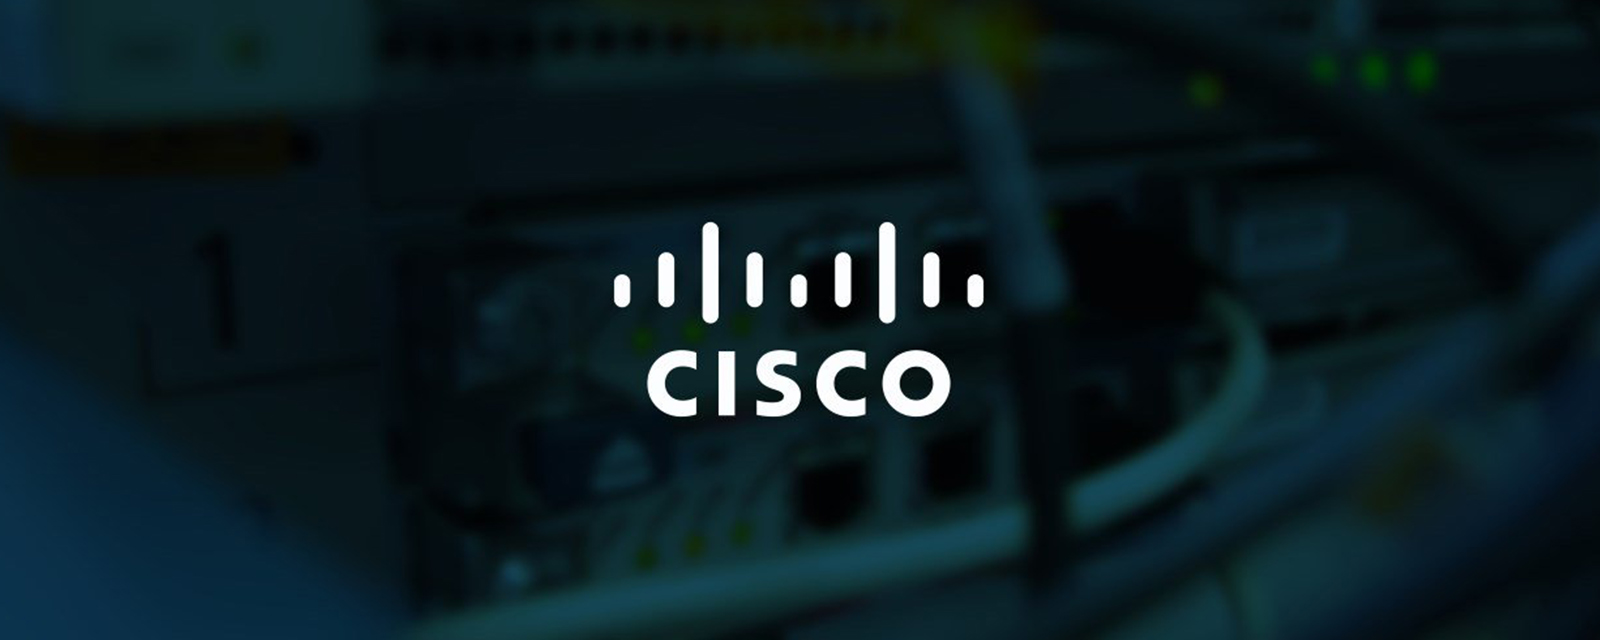 hero-banner-for-Cisco